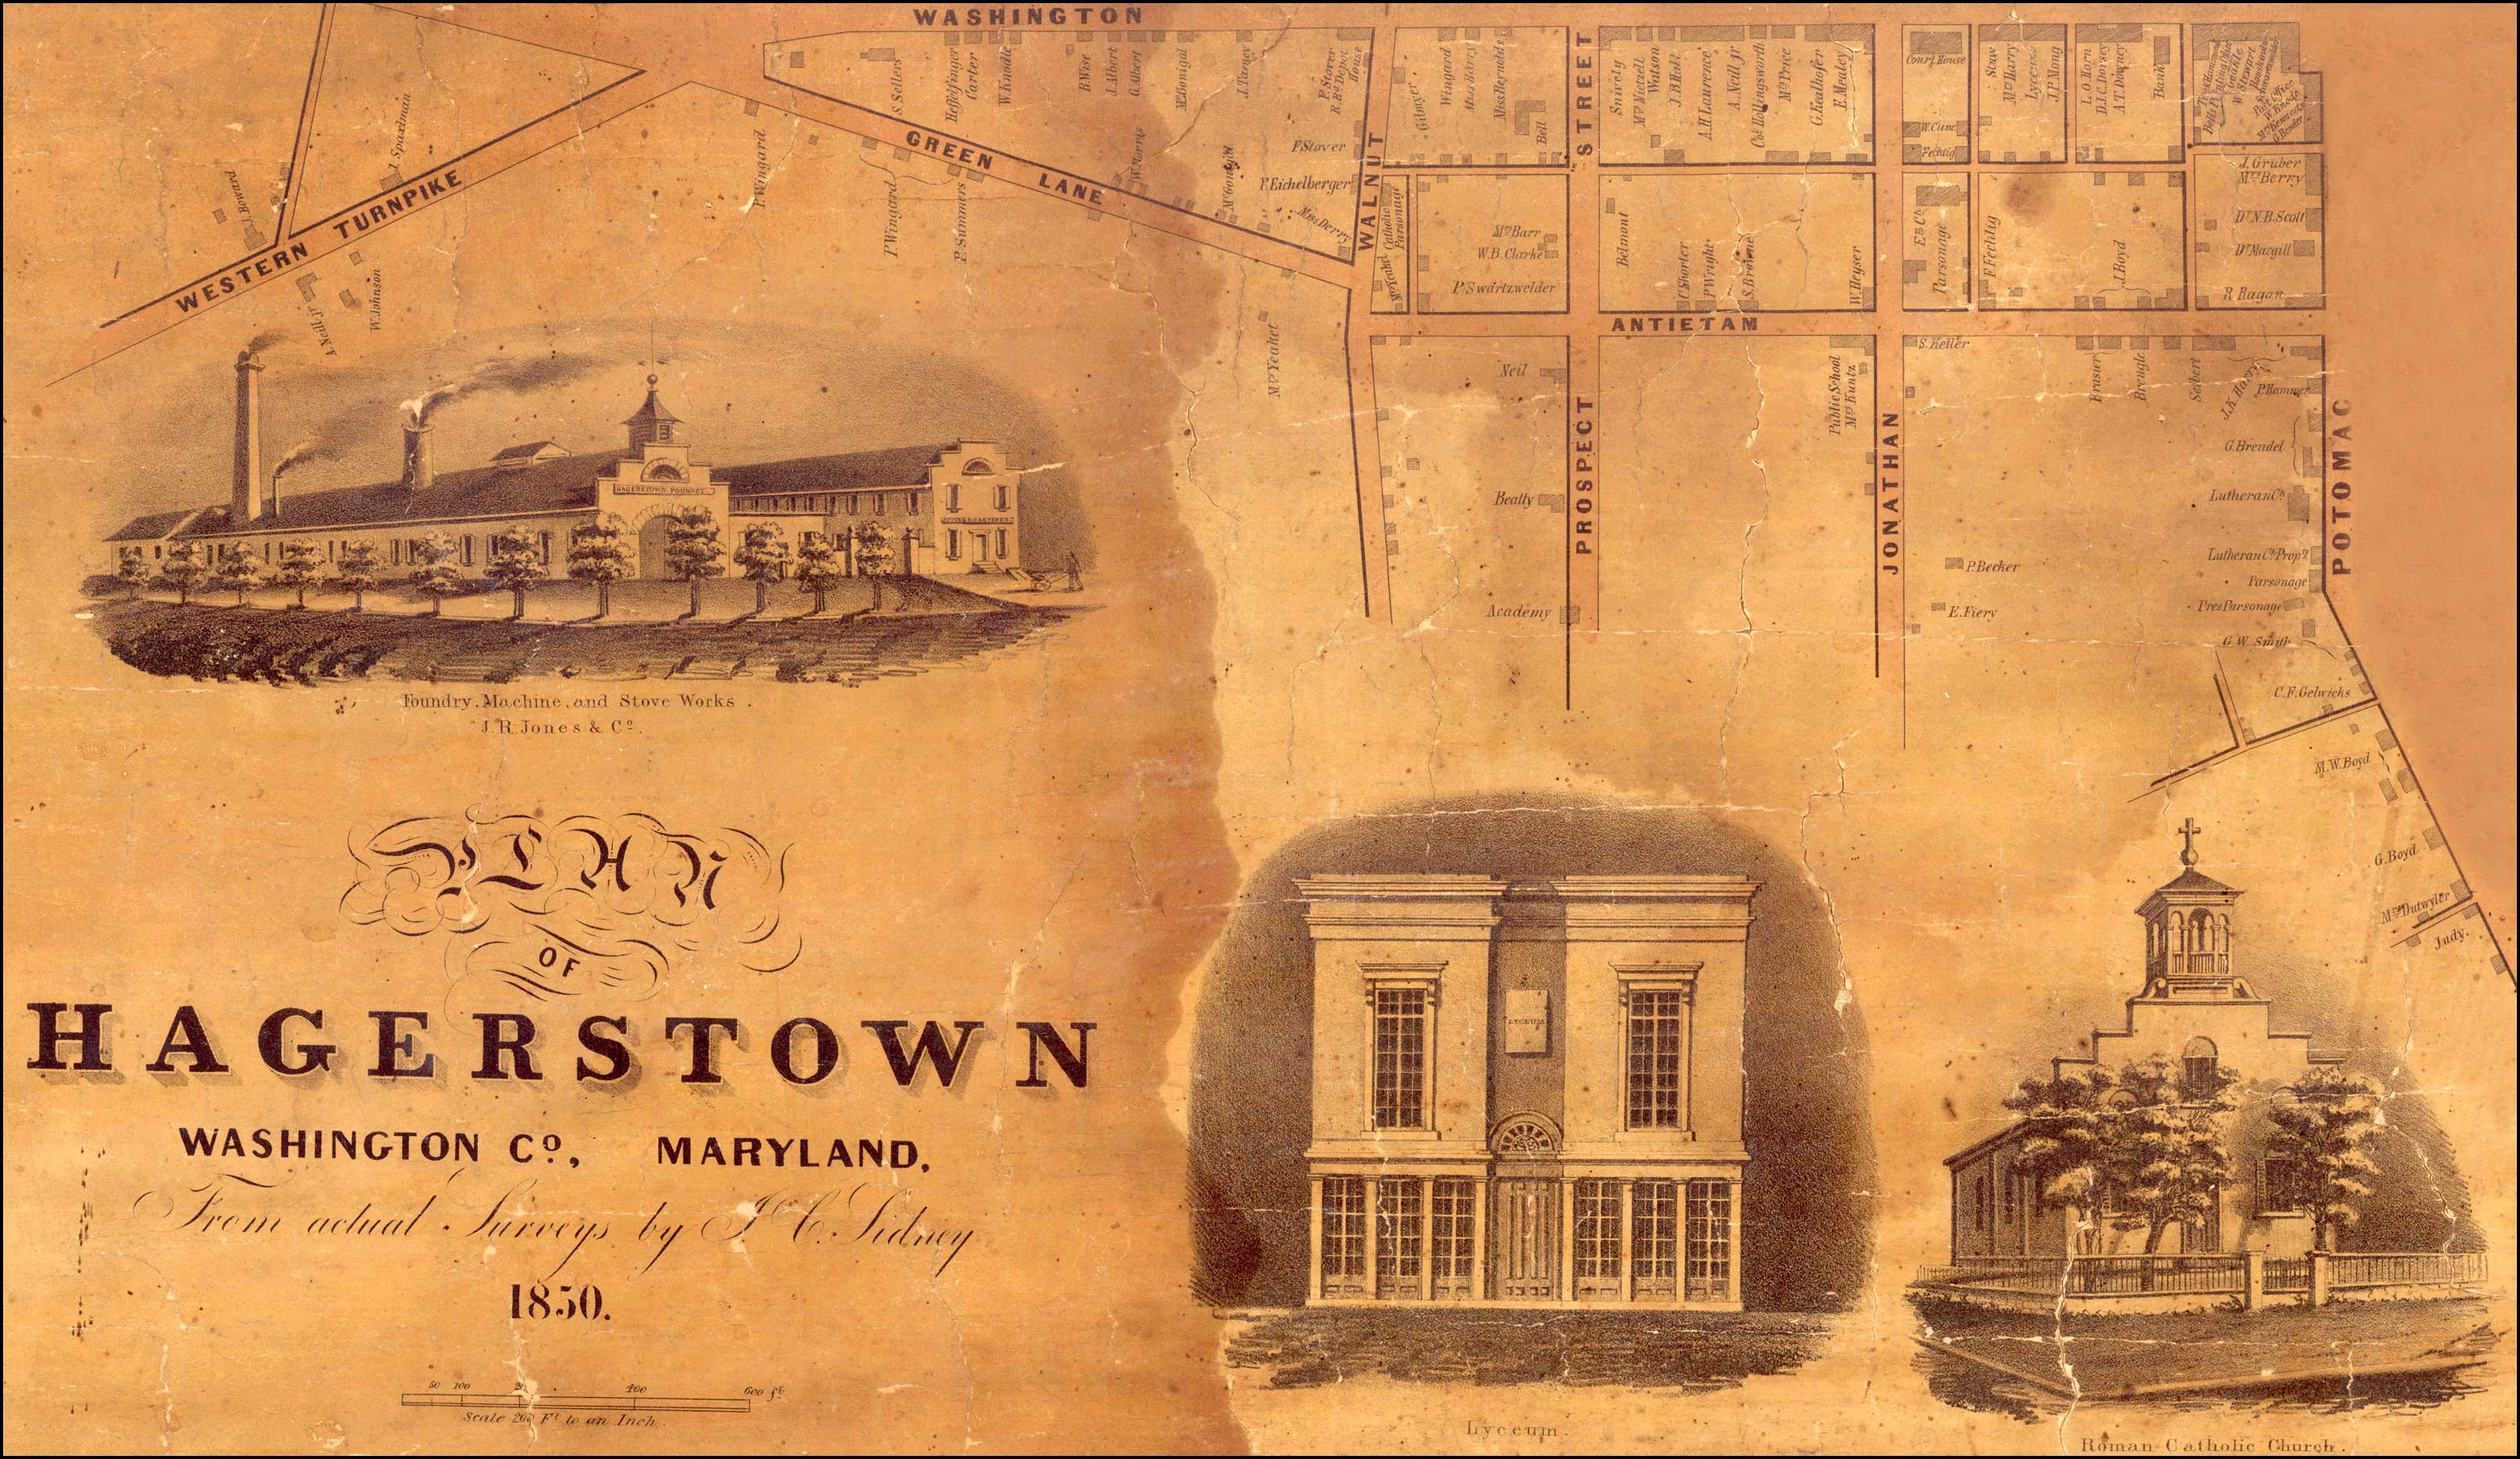 Detail of South-West Hagerstown from Map of Hagerstown. J.C. Sidney, 1850, MSA SC 5409-1-1